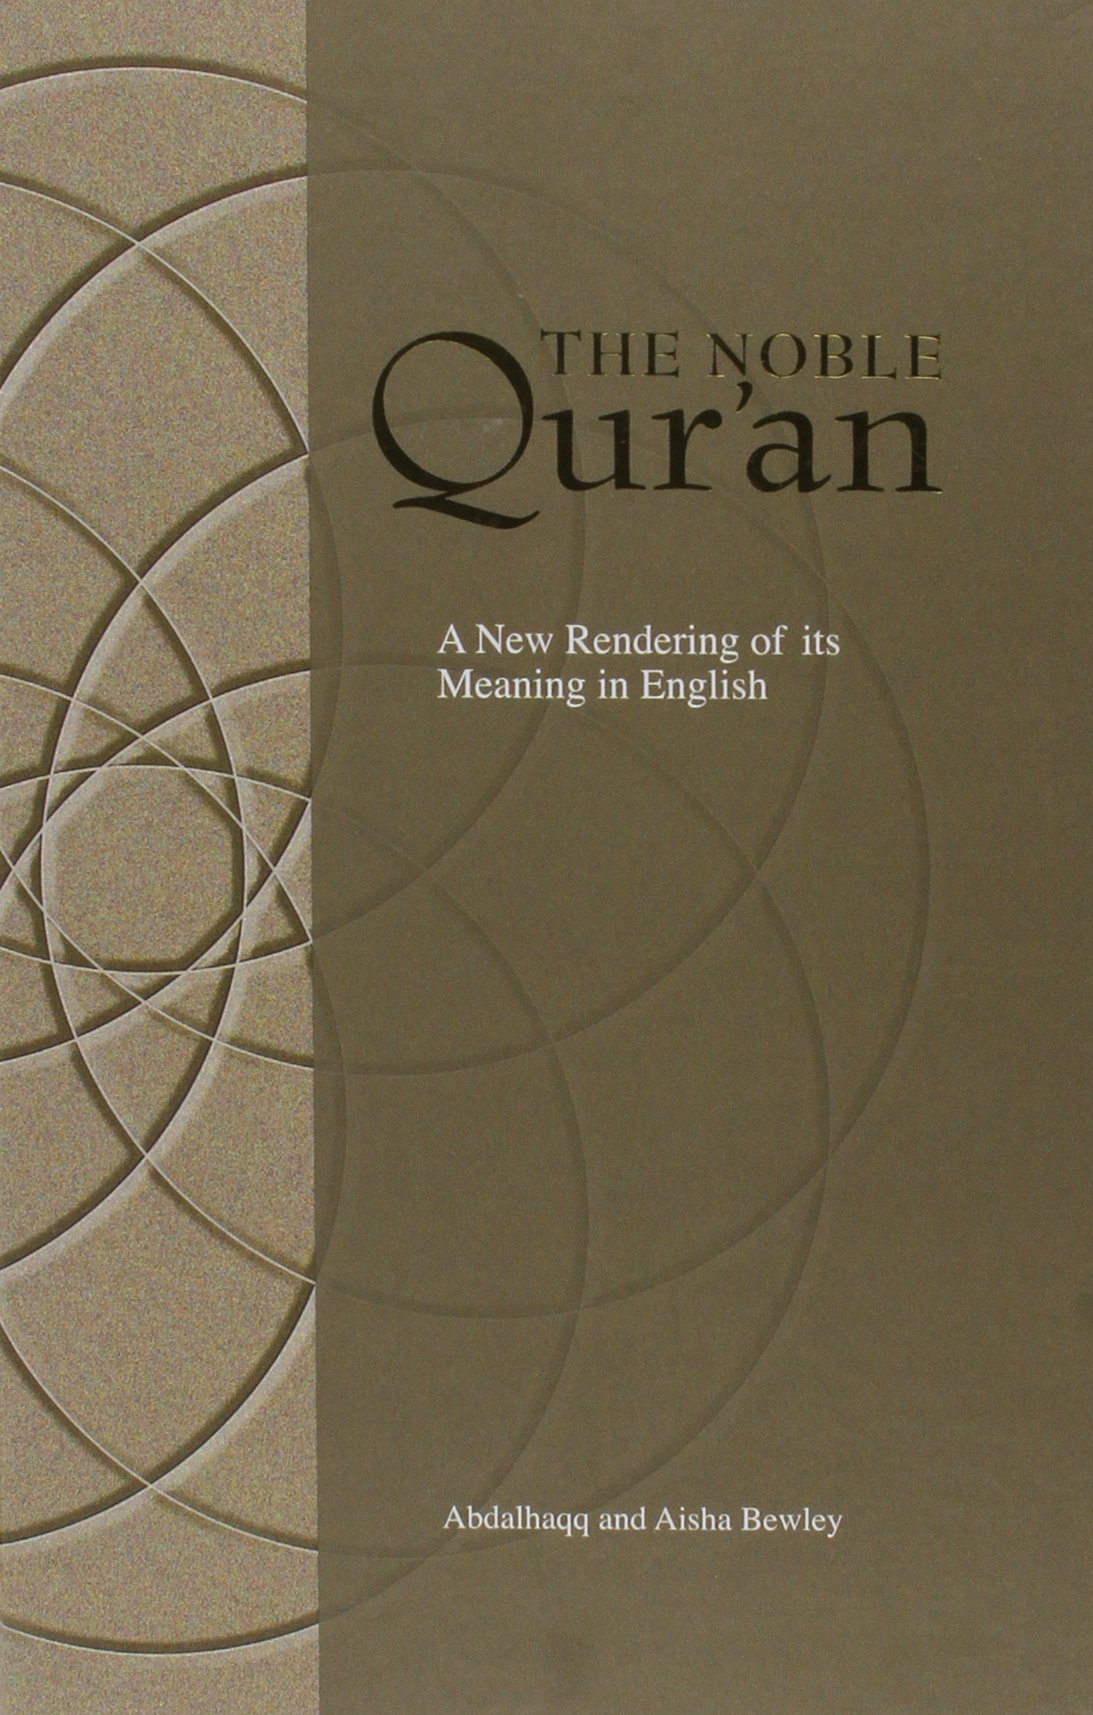 The Noble Quran A New Rendering Of Its Meaning In English Hardcover 30 Sep 2011 By Abdalhaqq Bewley